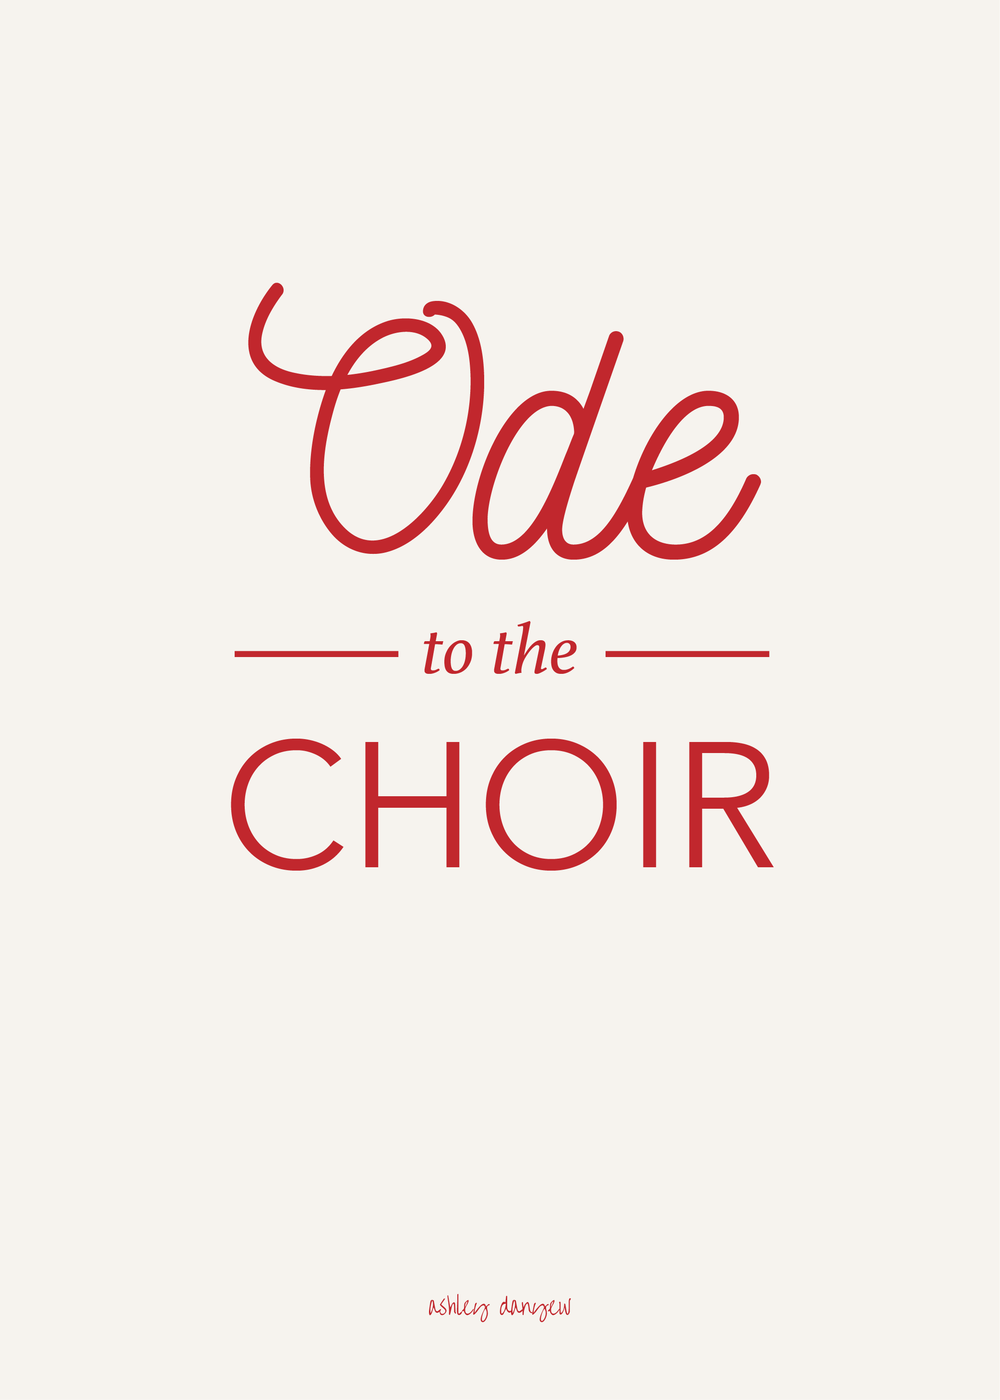 Copy of Ode to the Choir